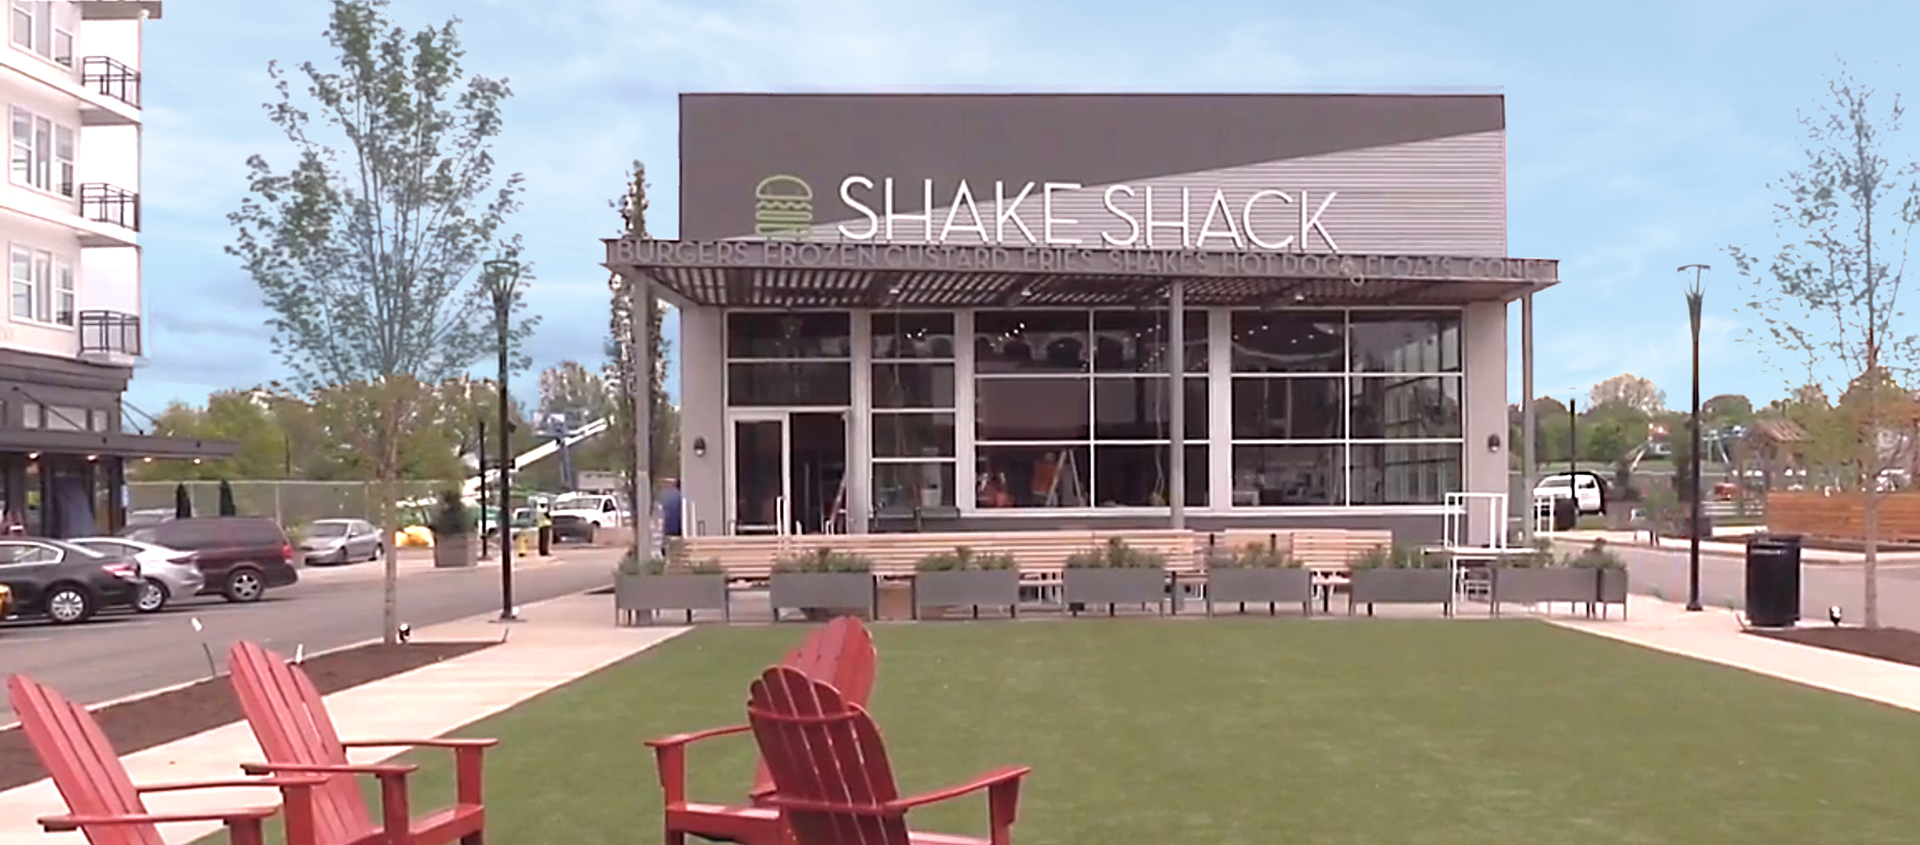 Renlita S-500 Shake Shack vertical door